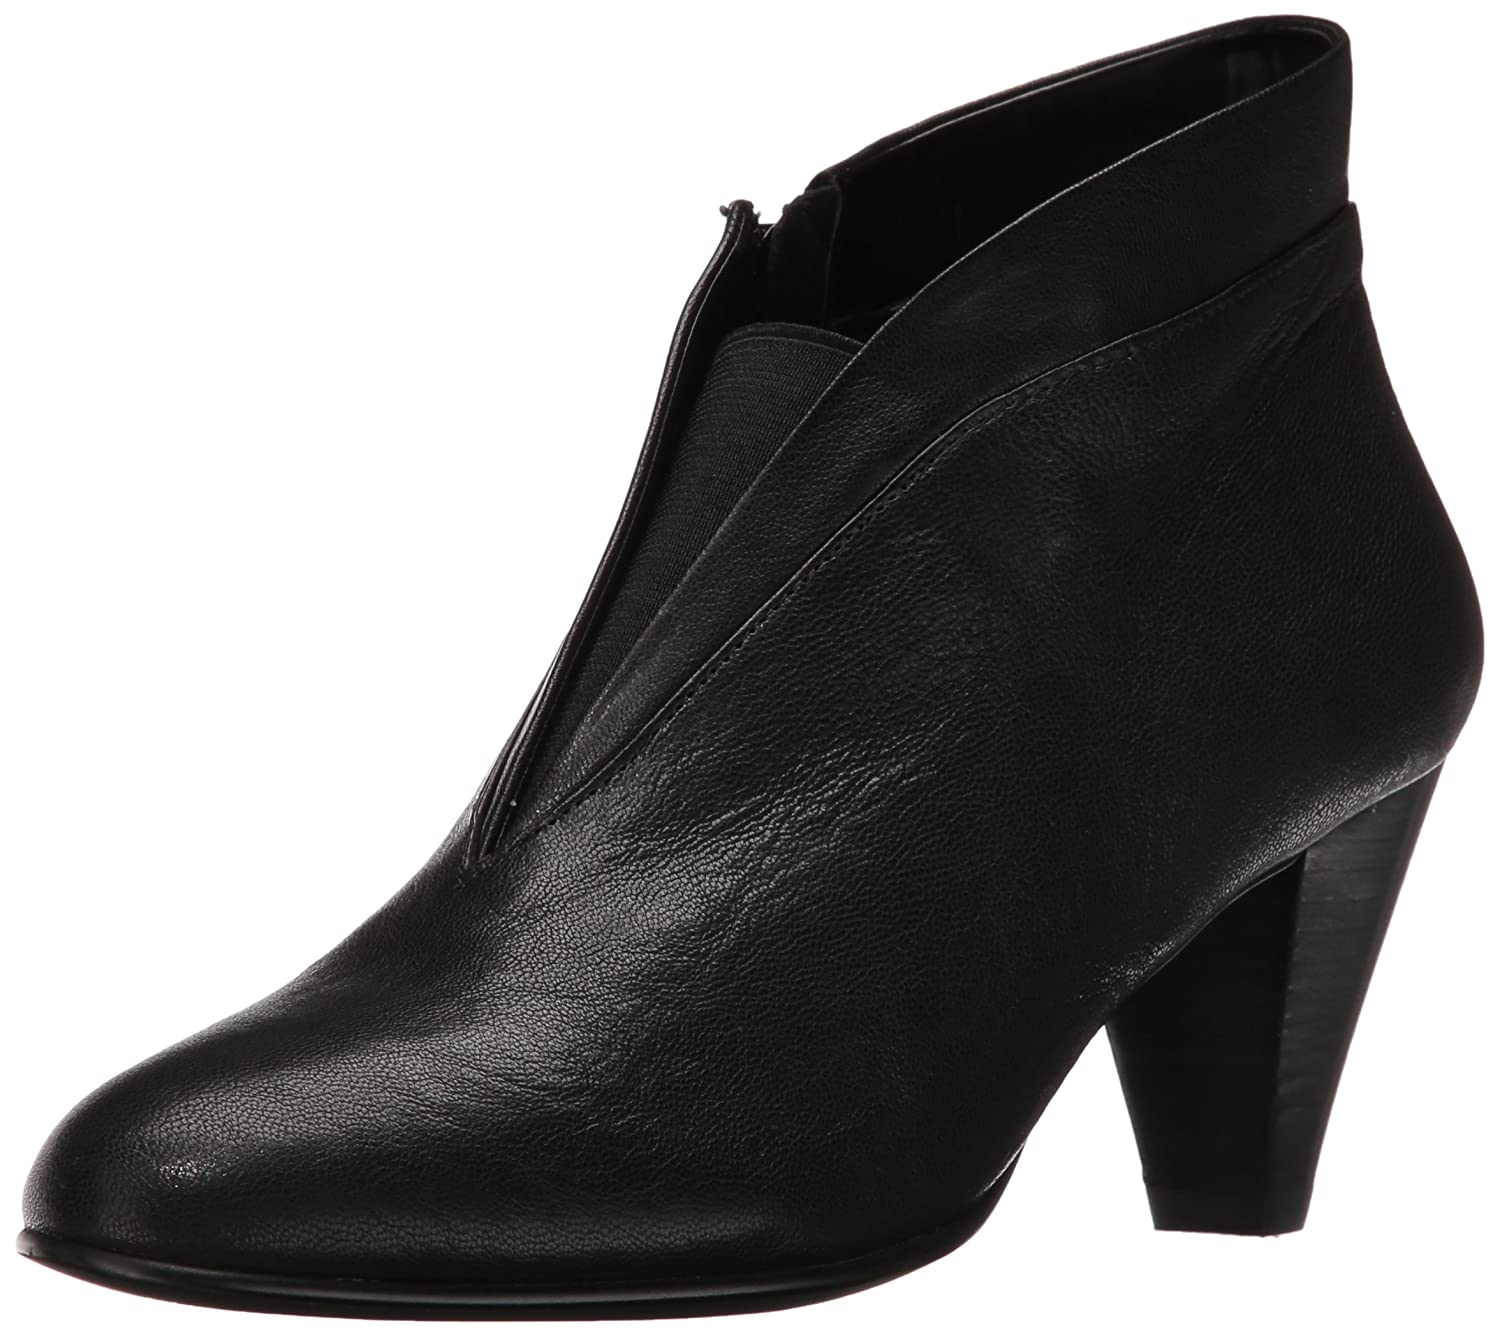 David Tate Women's Natalie Bootie B01B8DNZ3G 13 B(M) US|Black Nappa Kid